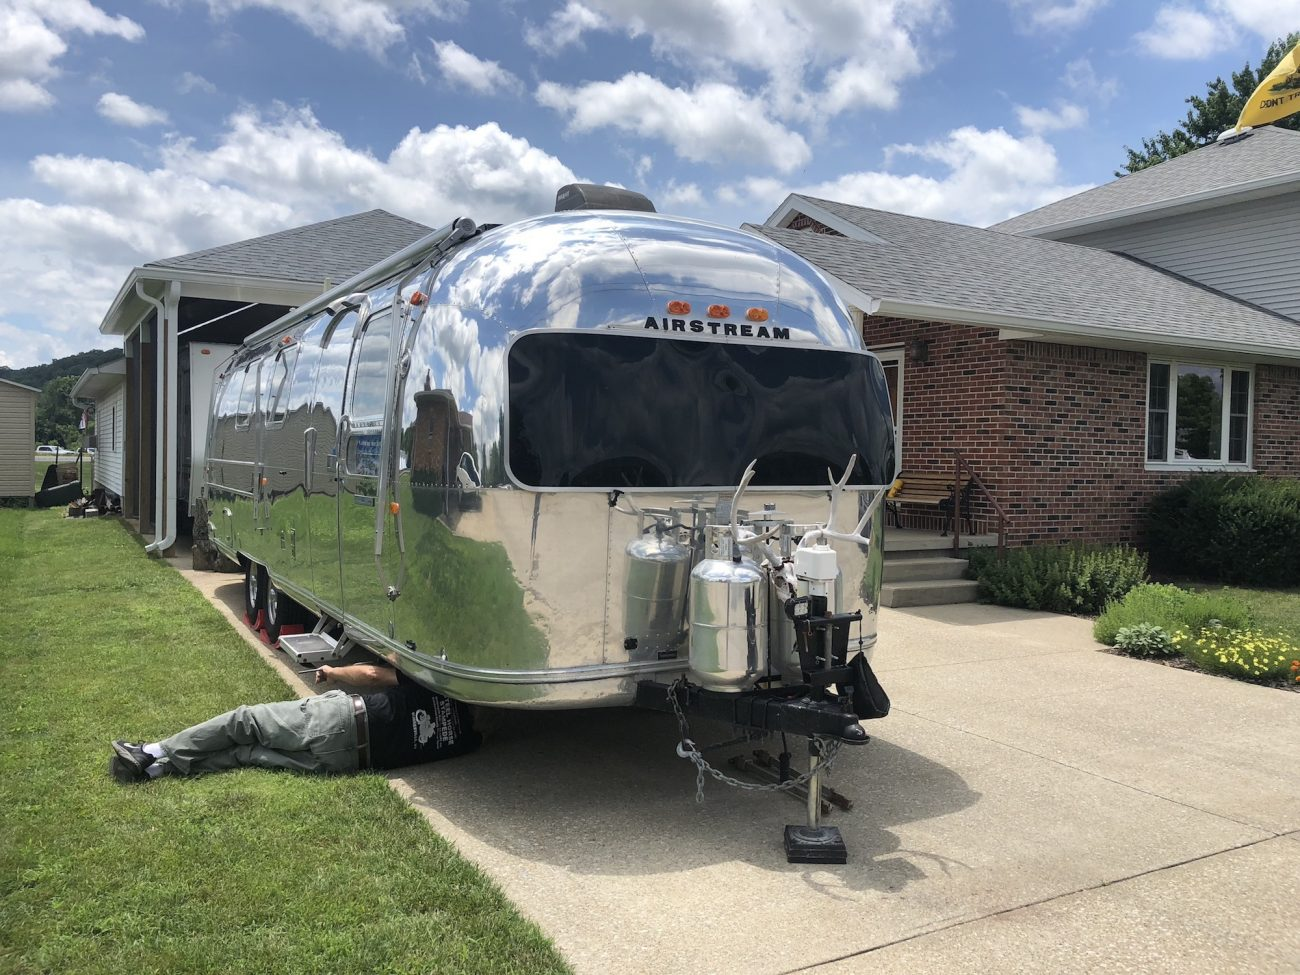 Back in Indiana with the Airstream